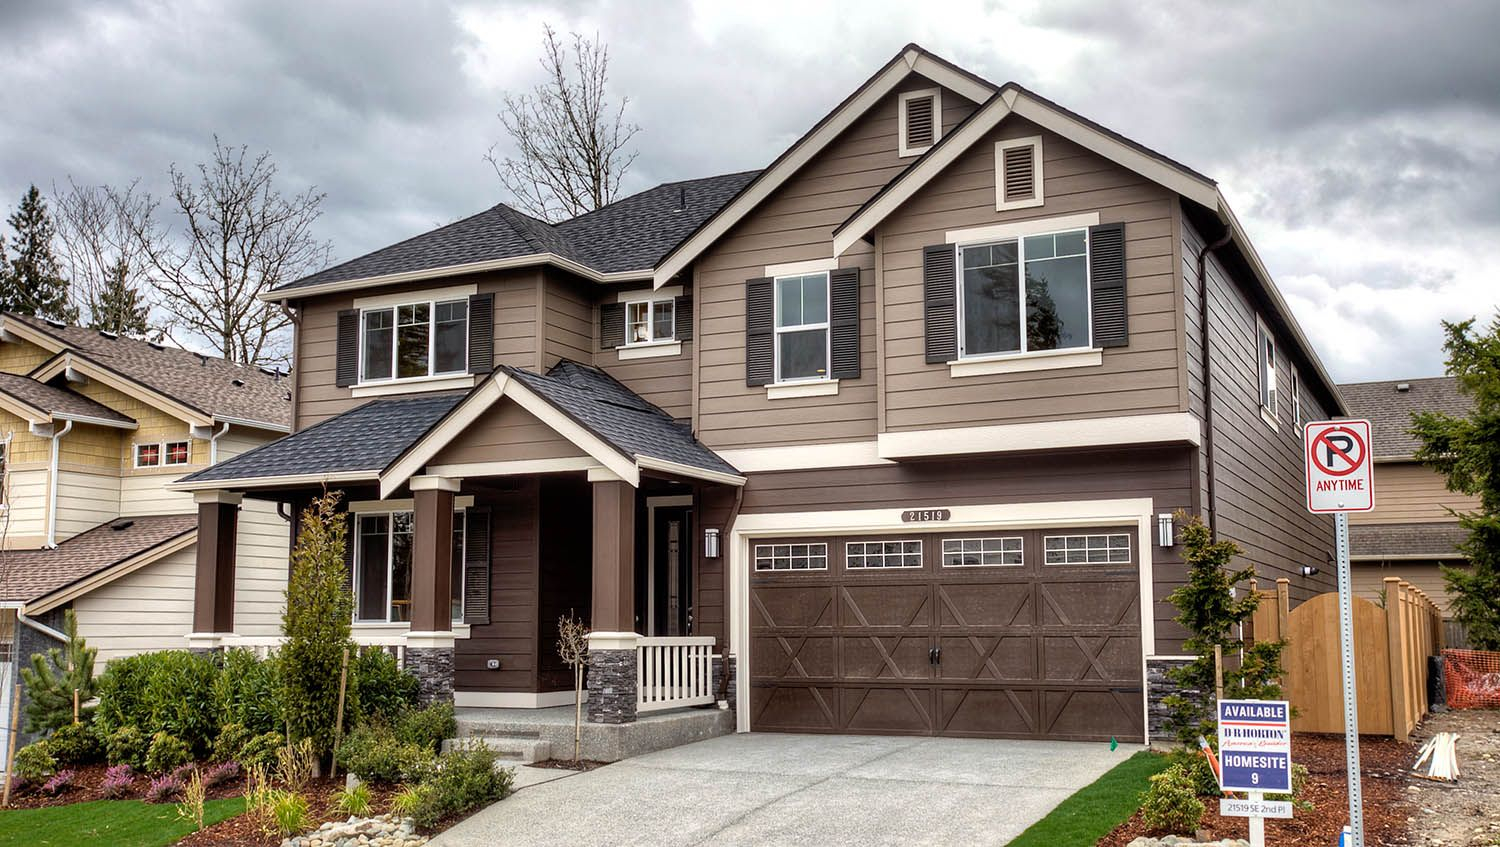 East renton highlands new homes topix for American classic homes renton